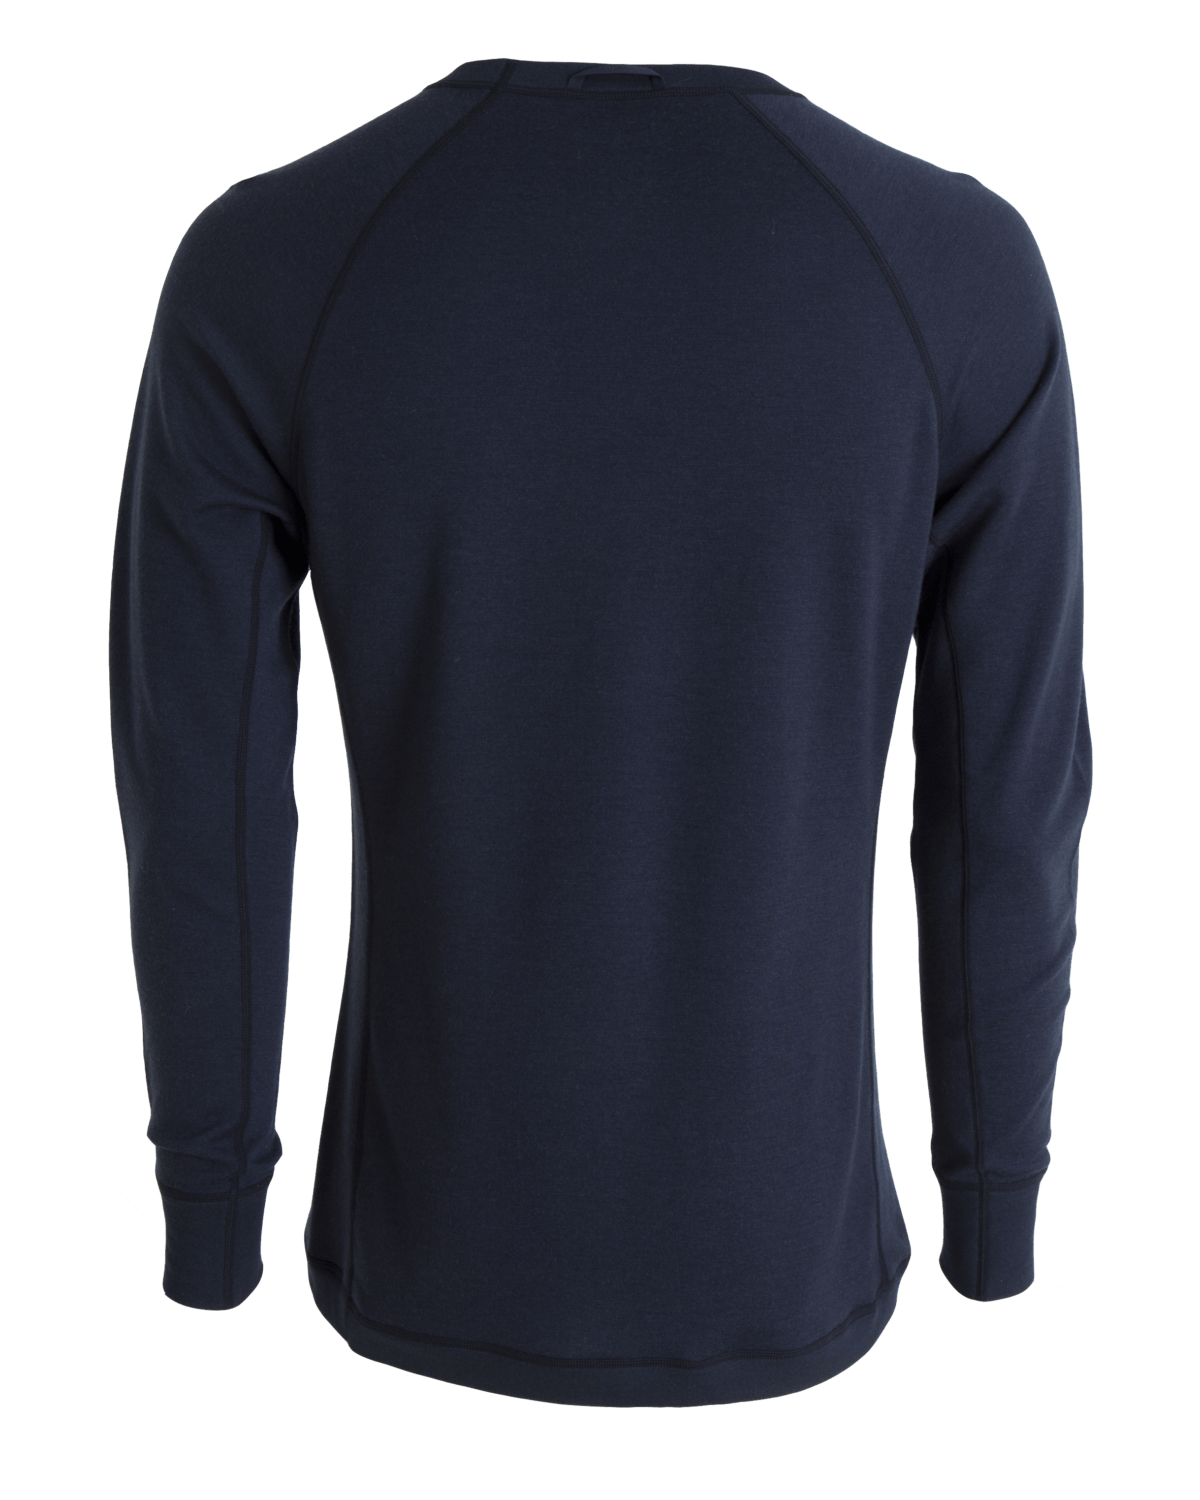 AW18 Tufte Bambull Crew Neck Men Blueberry Back